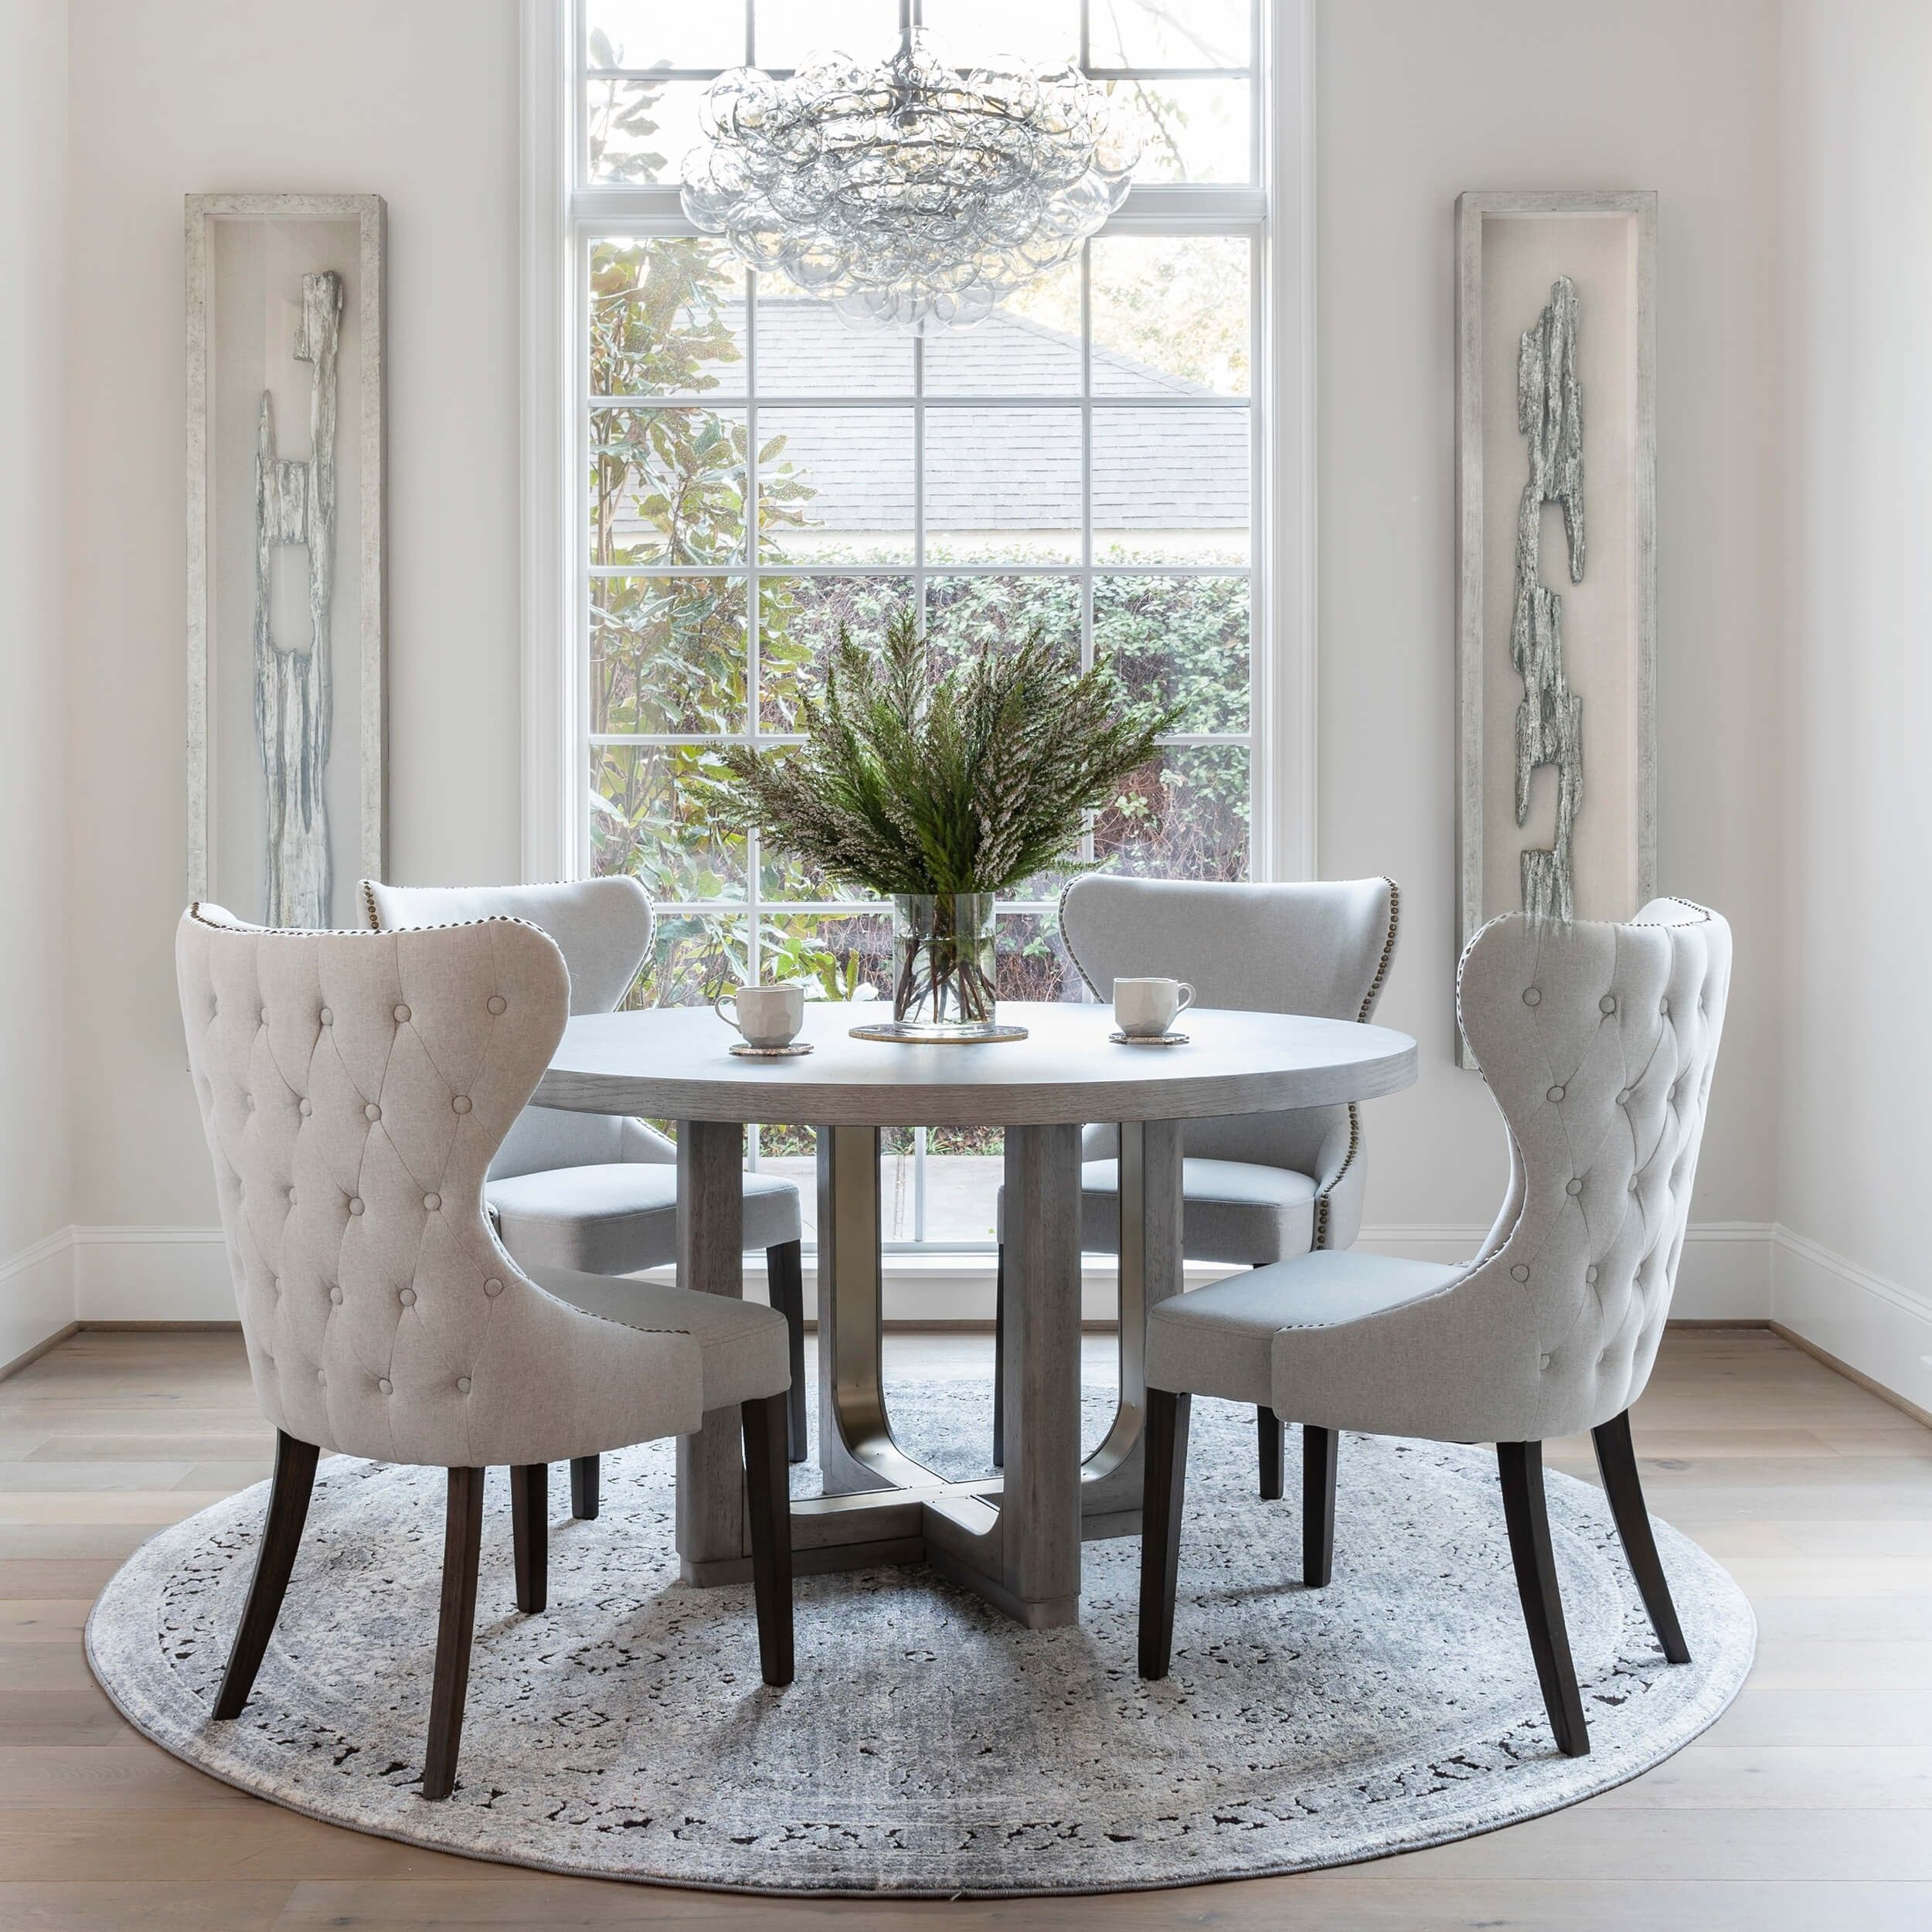 Pacifica Round Dining Table images